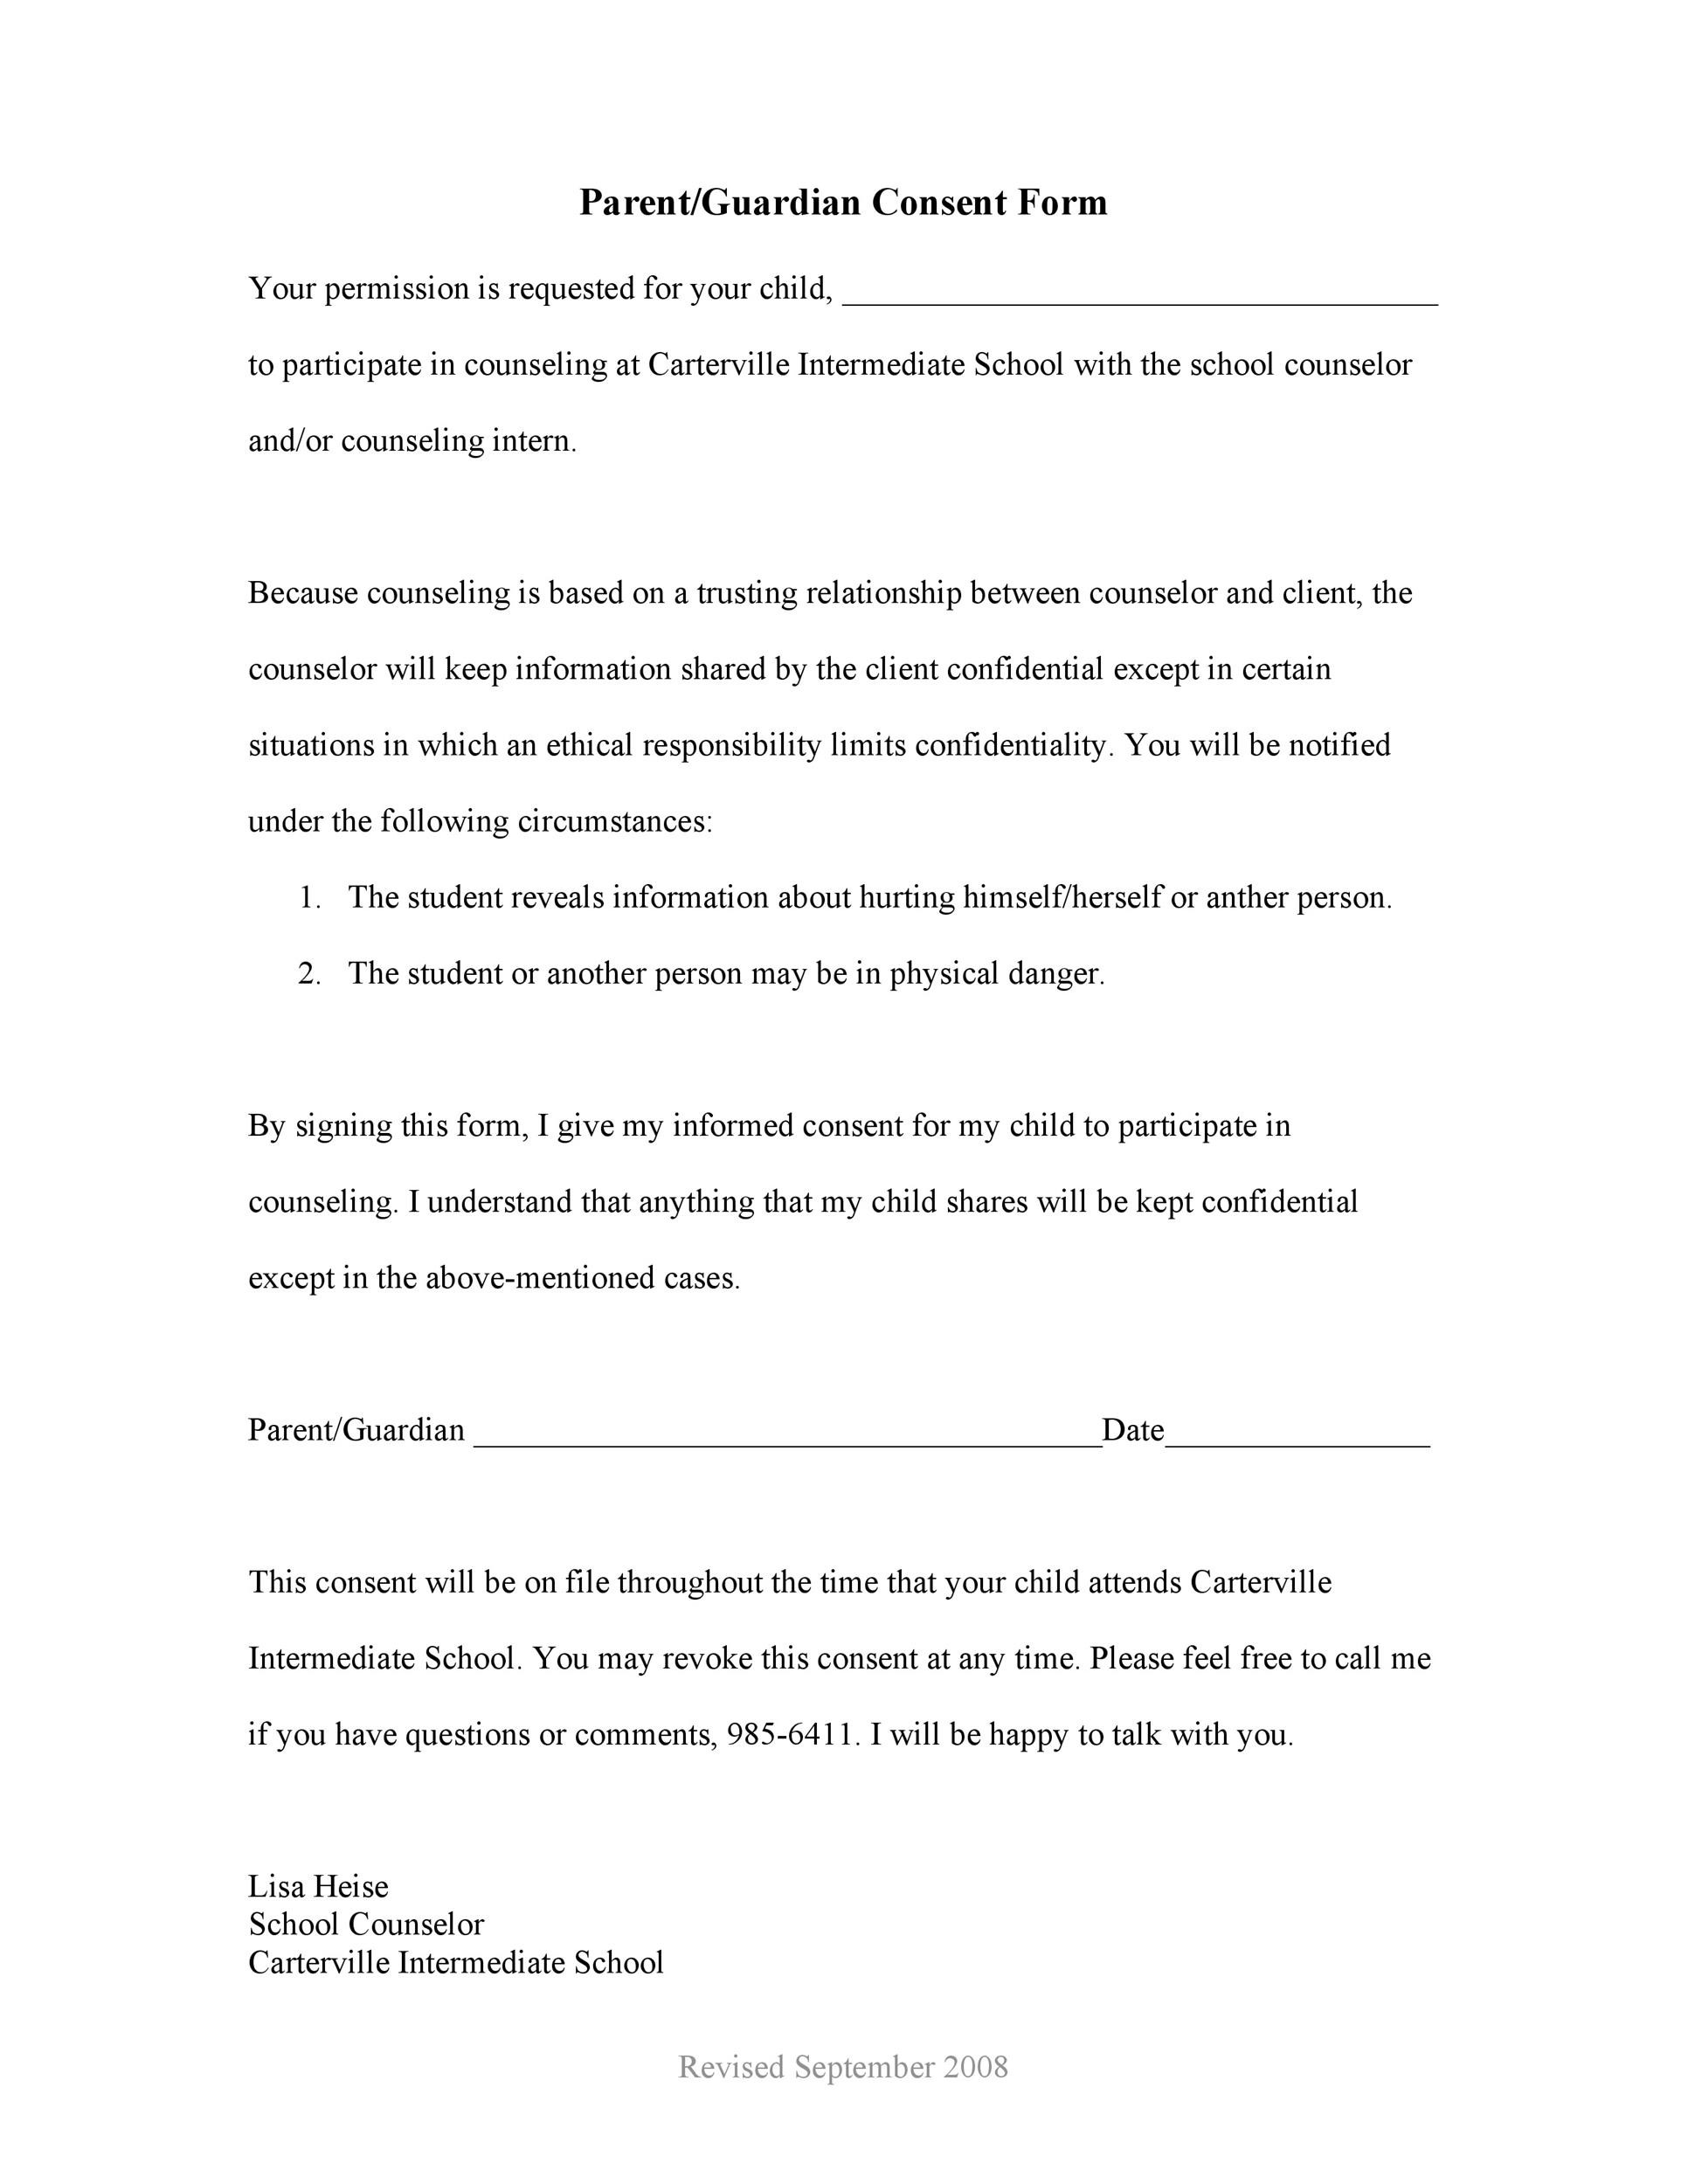 Free parental consent form template 03